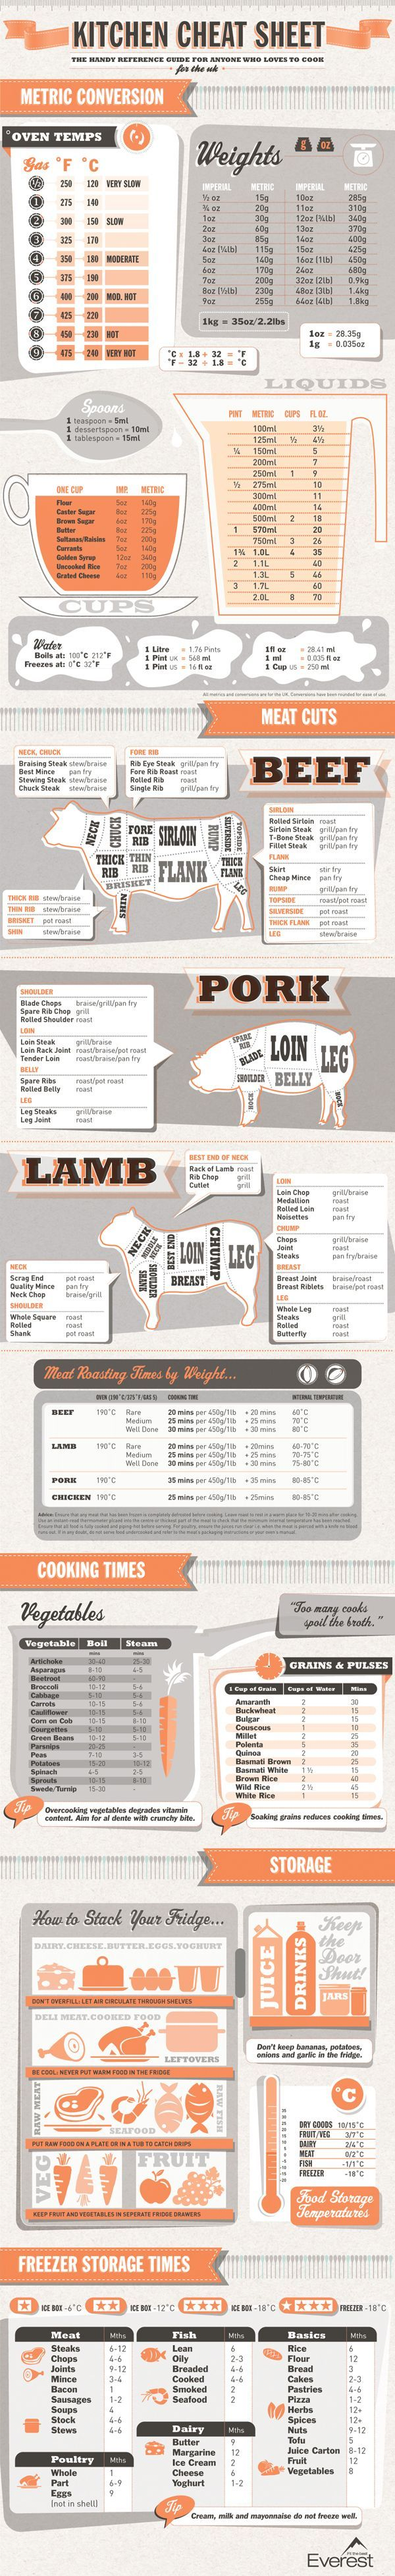 Everest's Kitchen Cheat Sheet -lots more kitchen cheat sheets in link